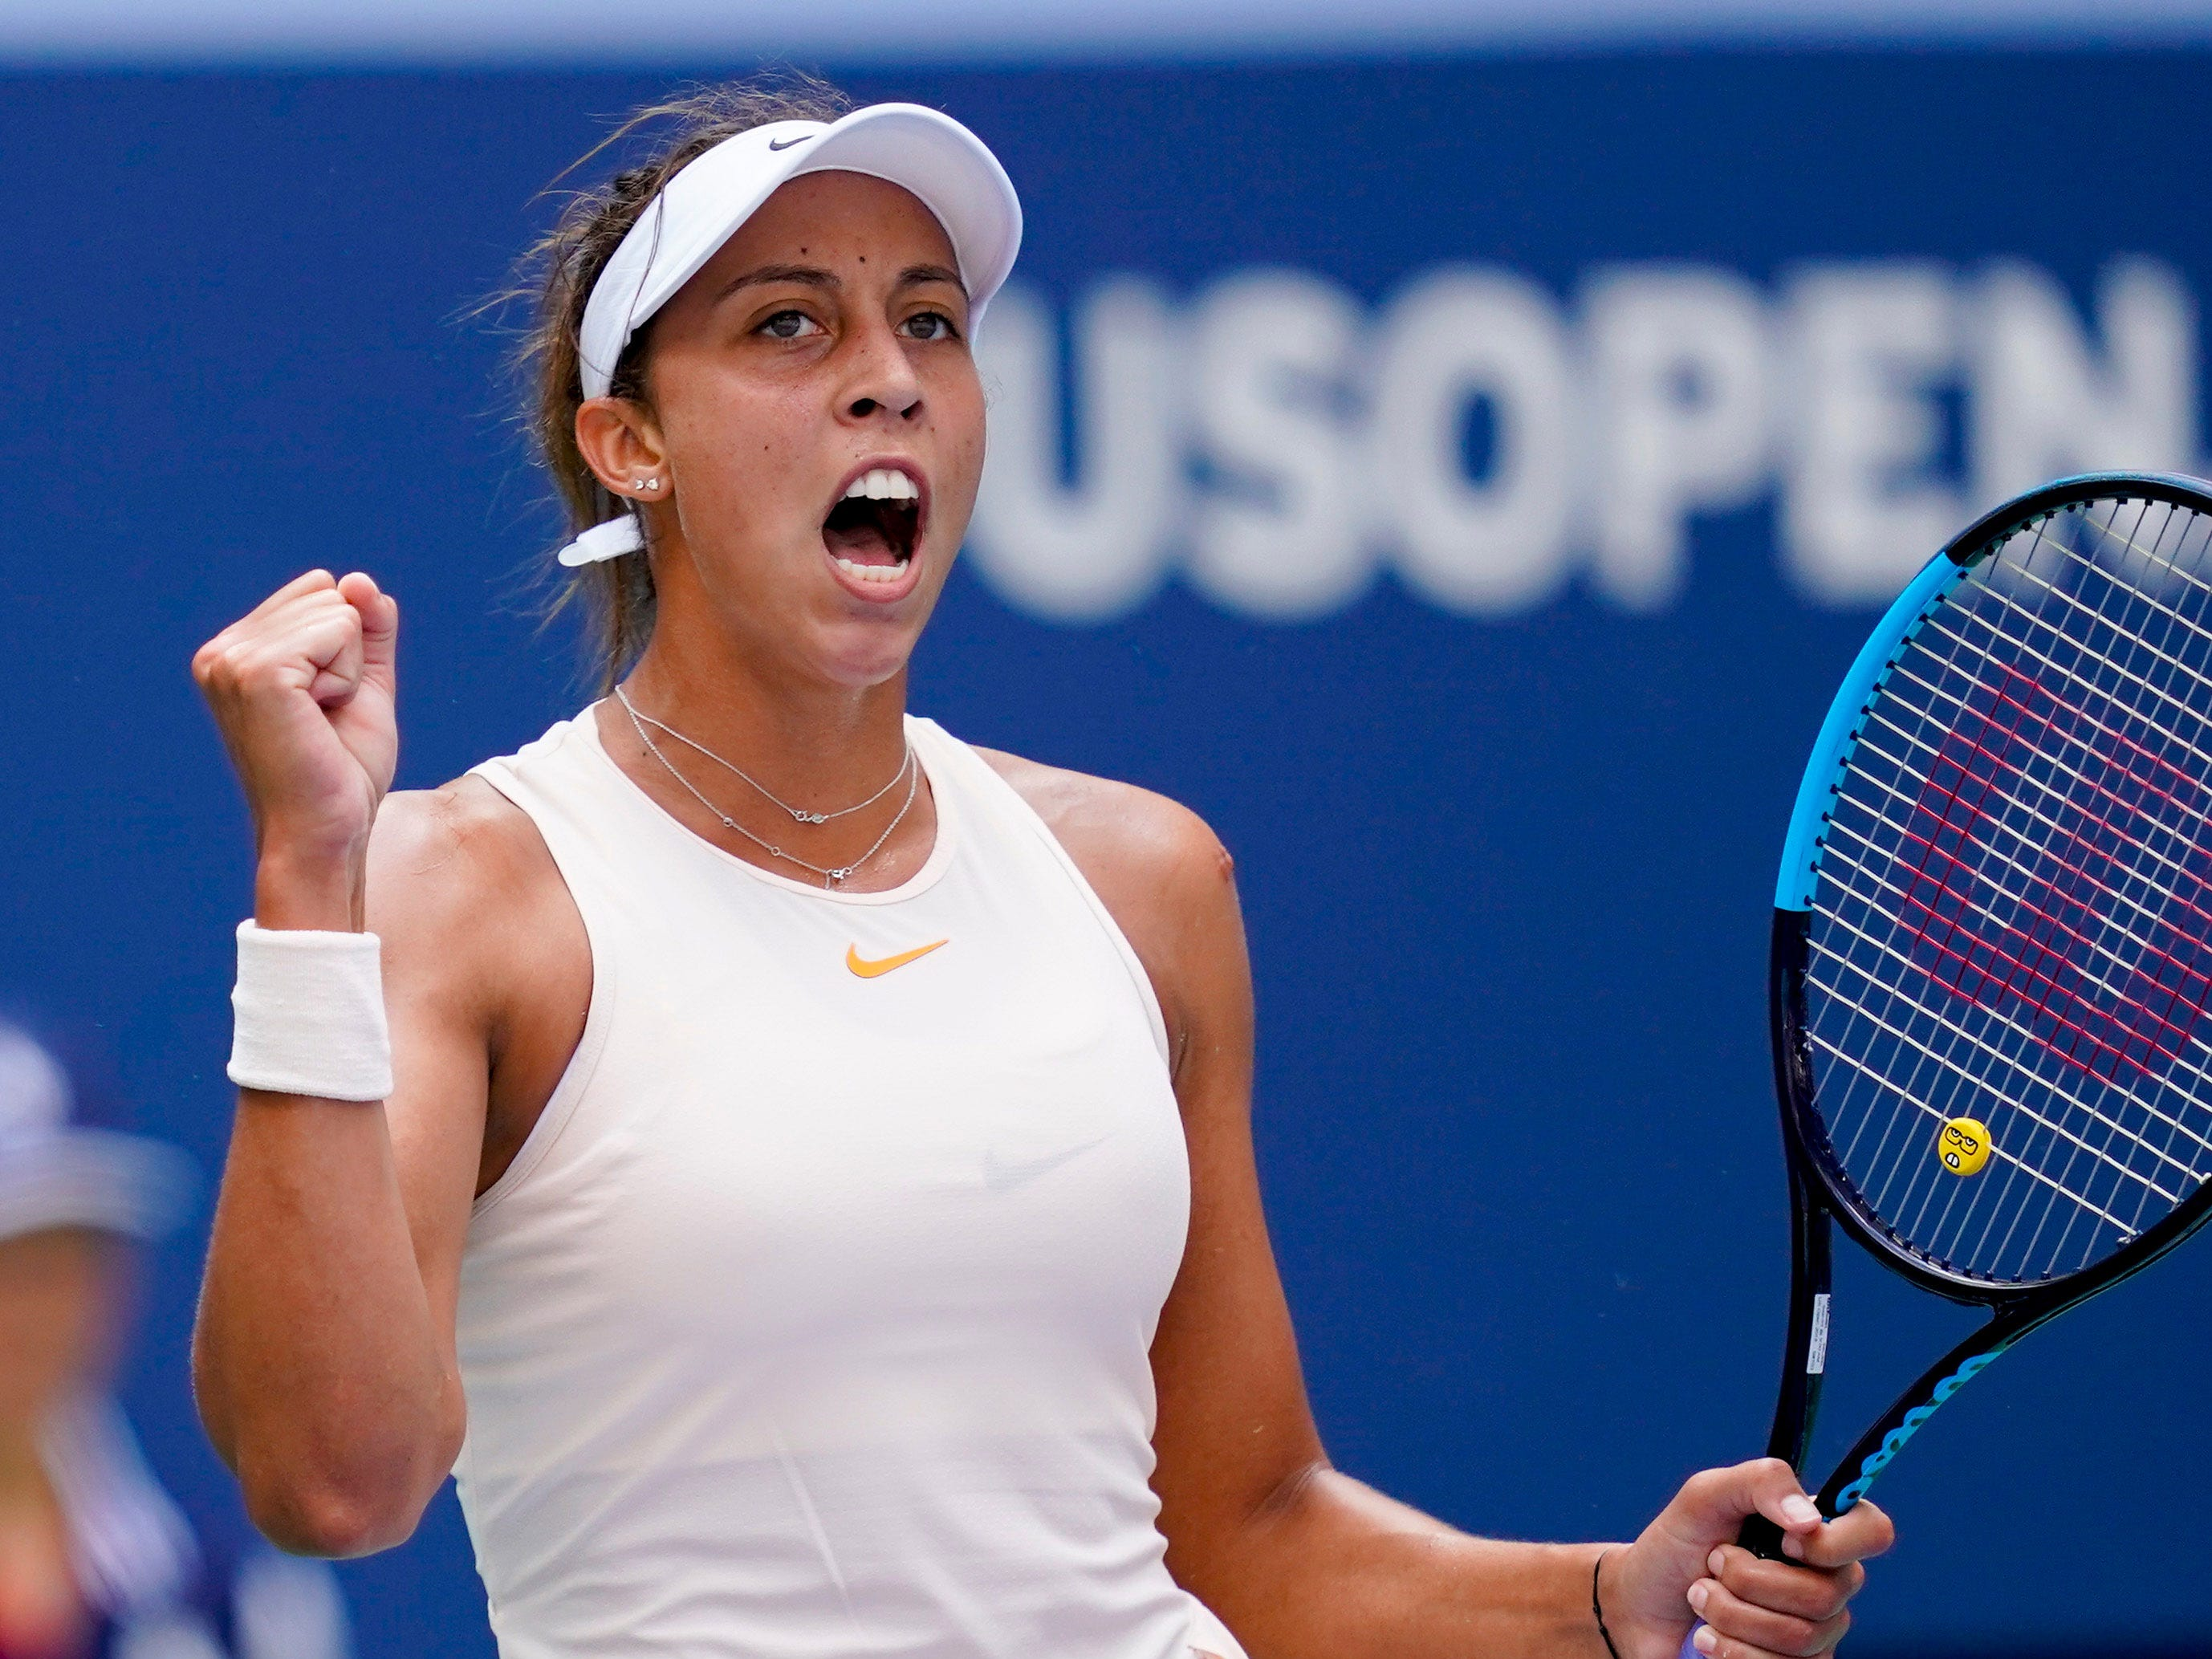 Madison Keys of the USA reacts after a service break against Dominika Cibulkova of Slovakia.